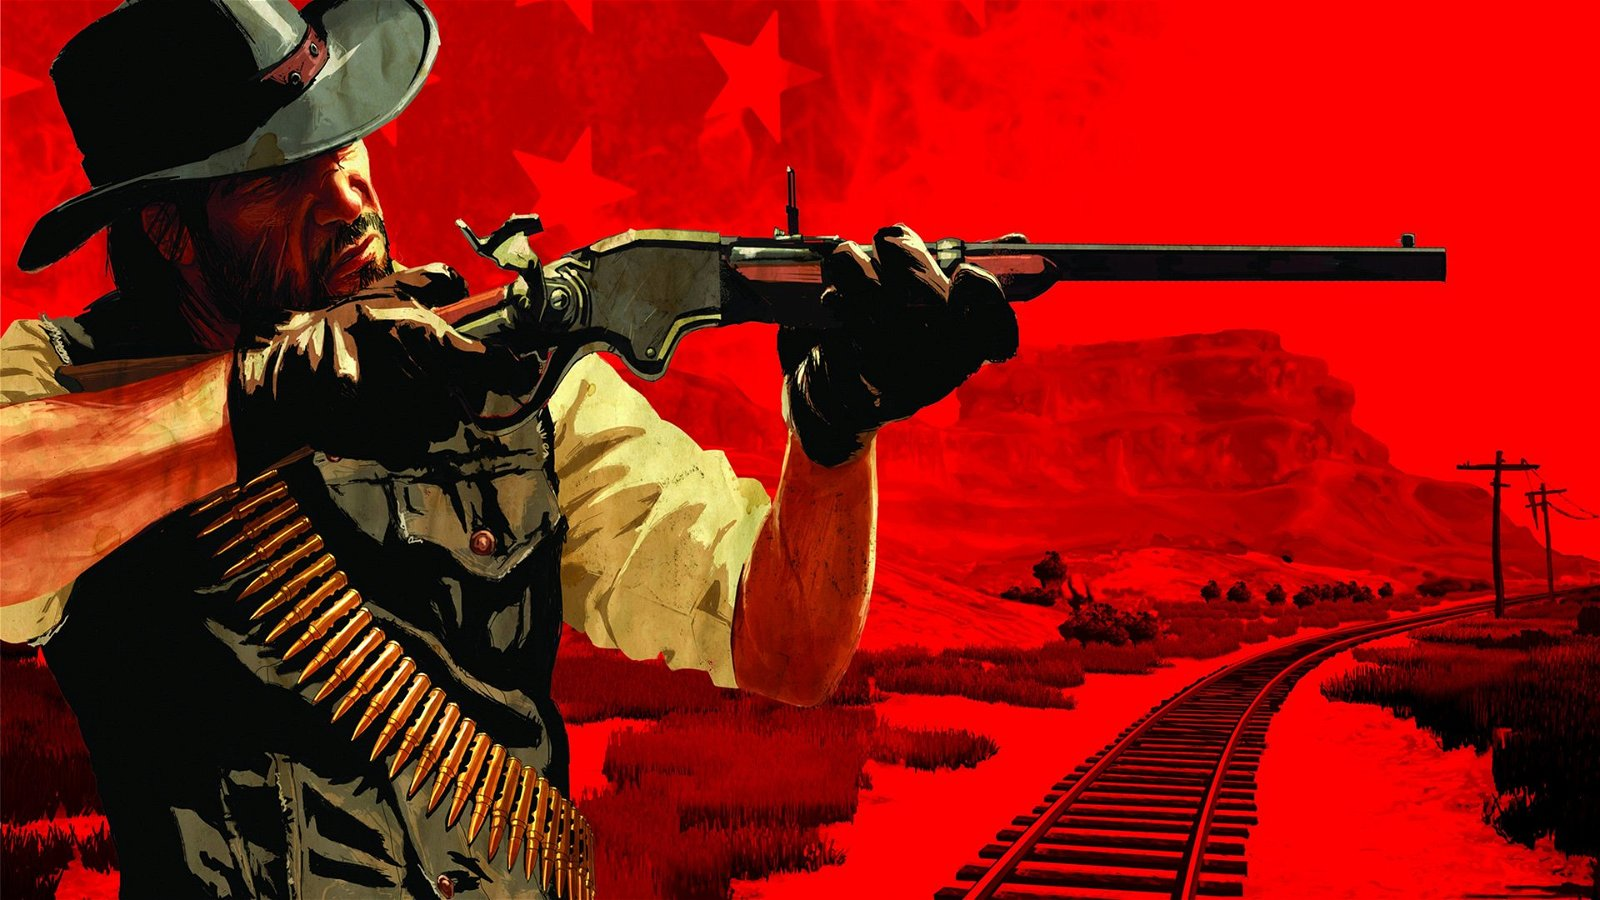 RUMOUR: New Red Dead Redemption Map Leaked 1